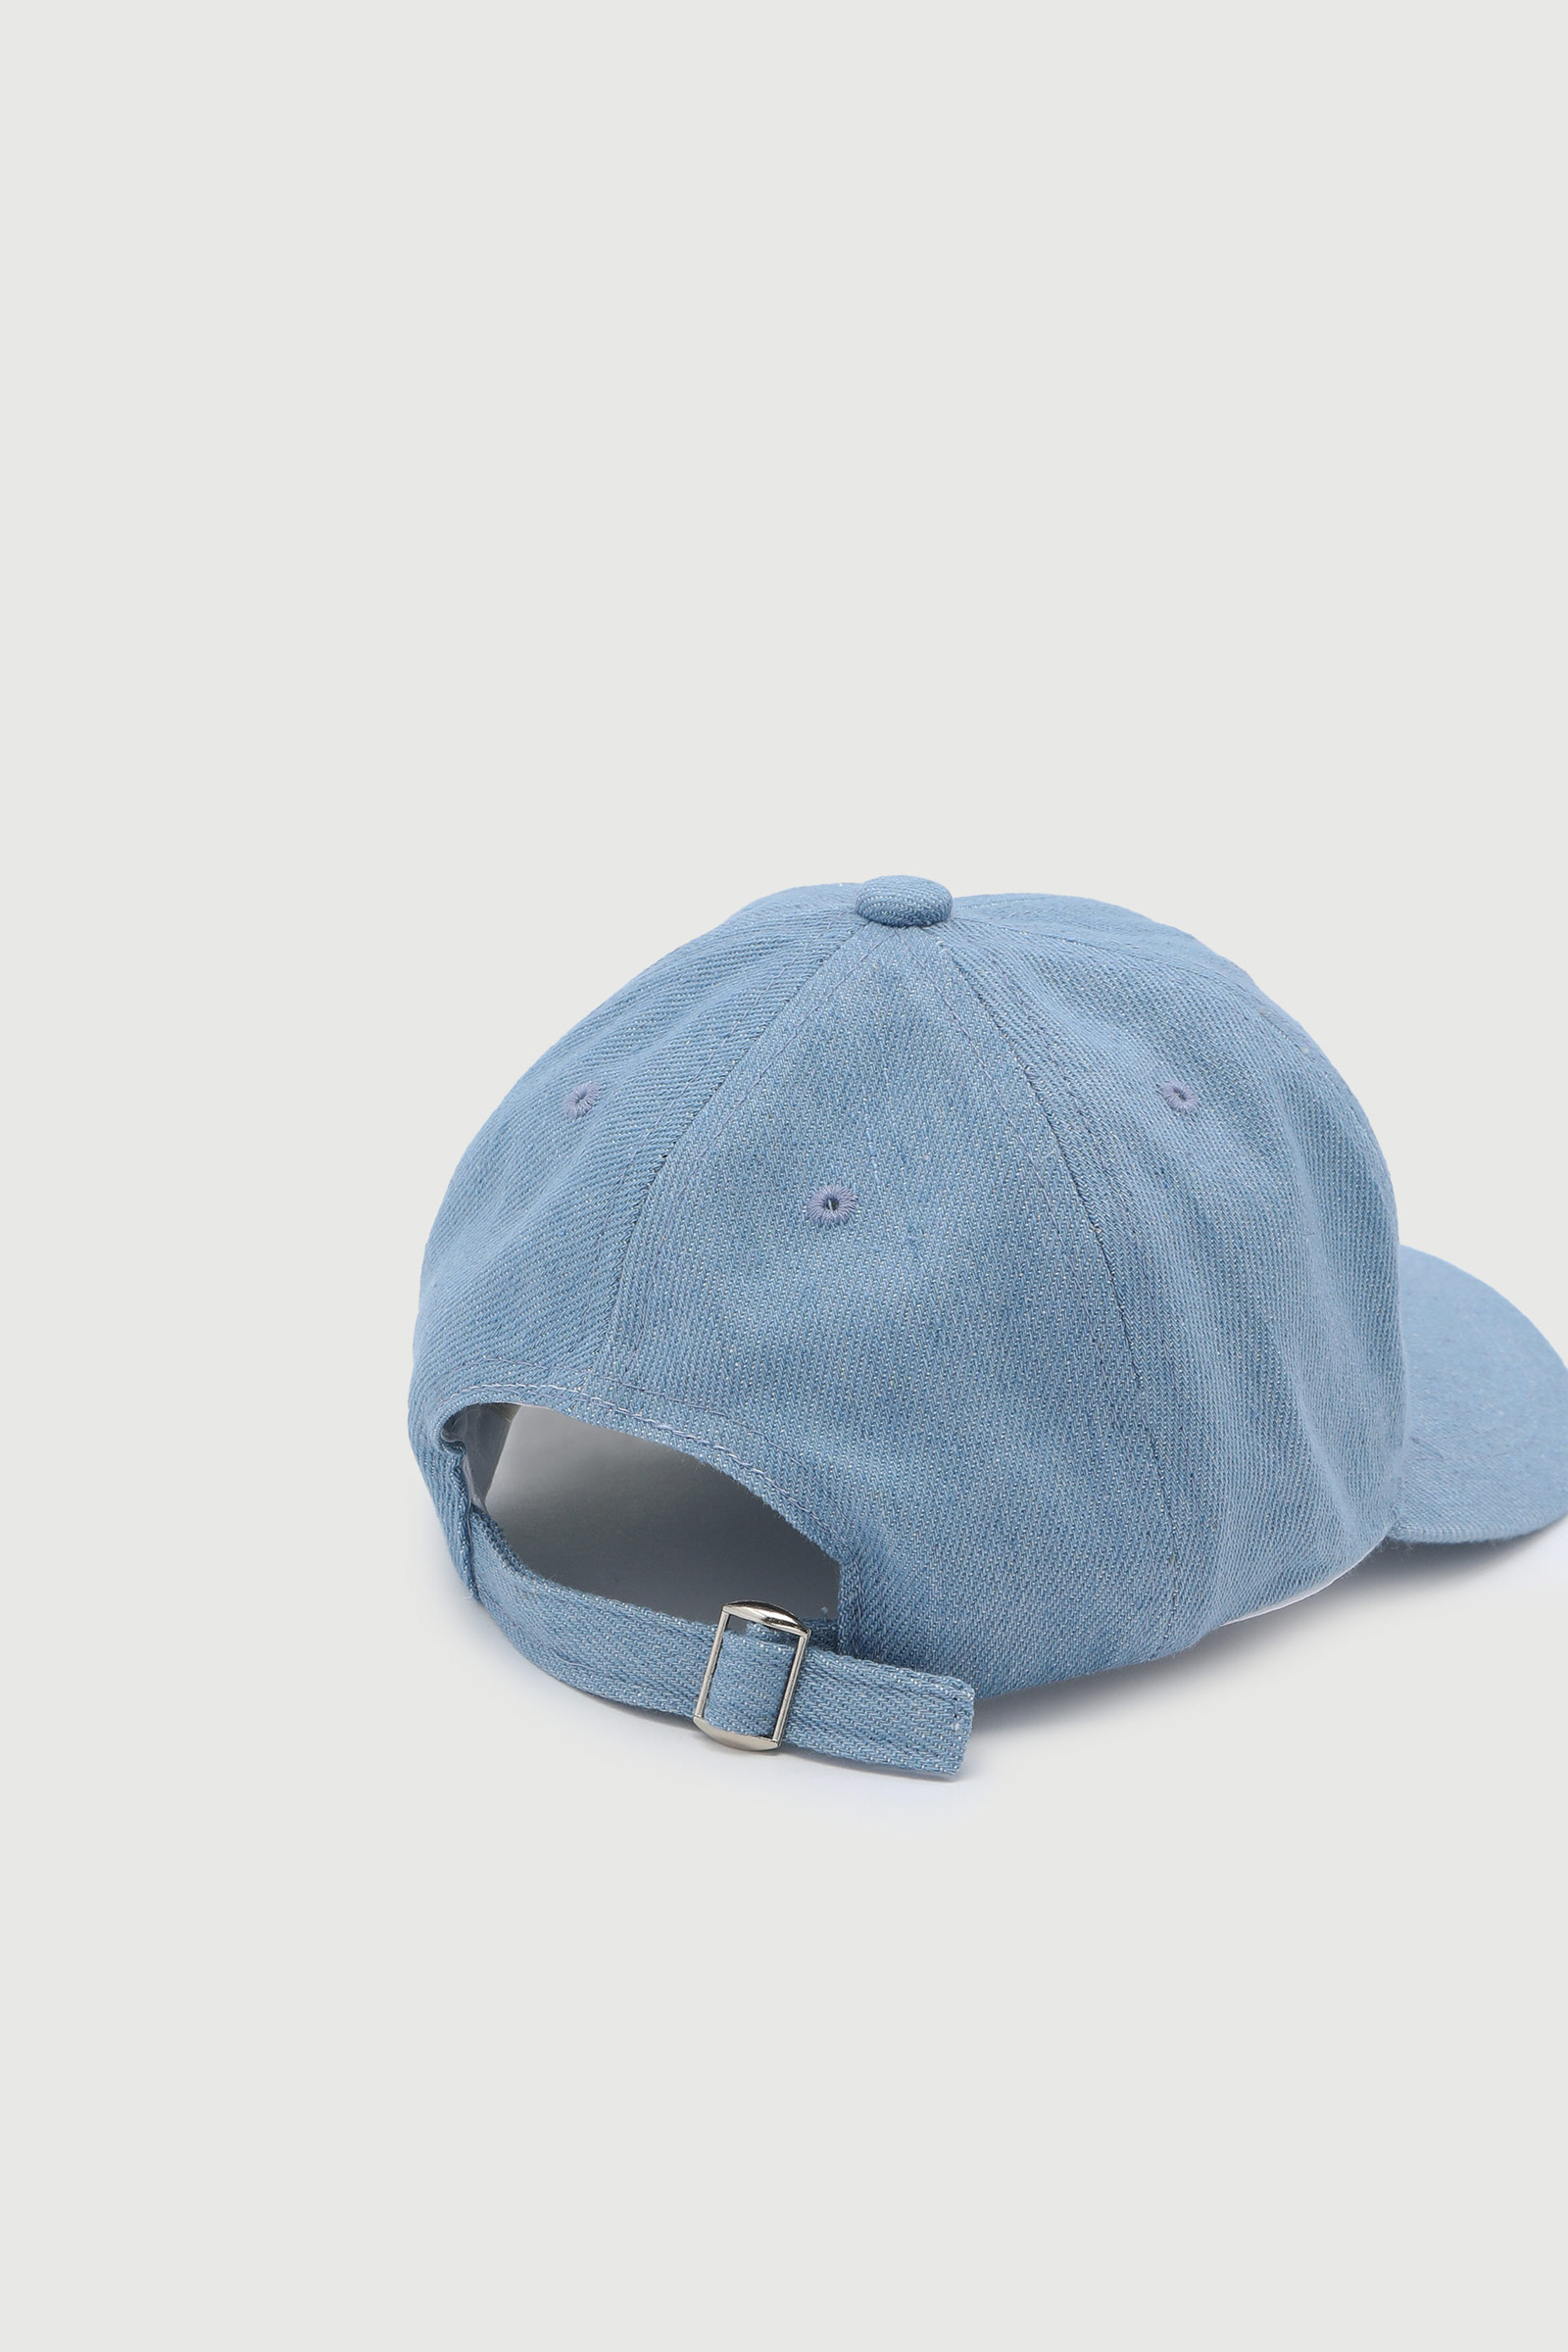 Baseball Cap with Flower Embroidery